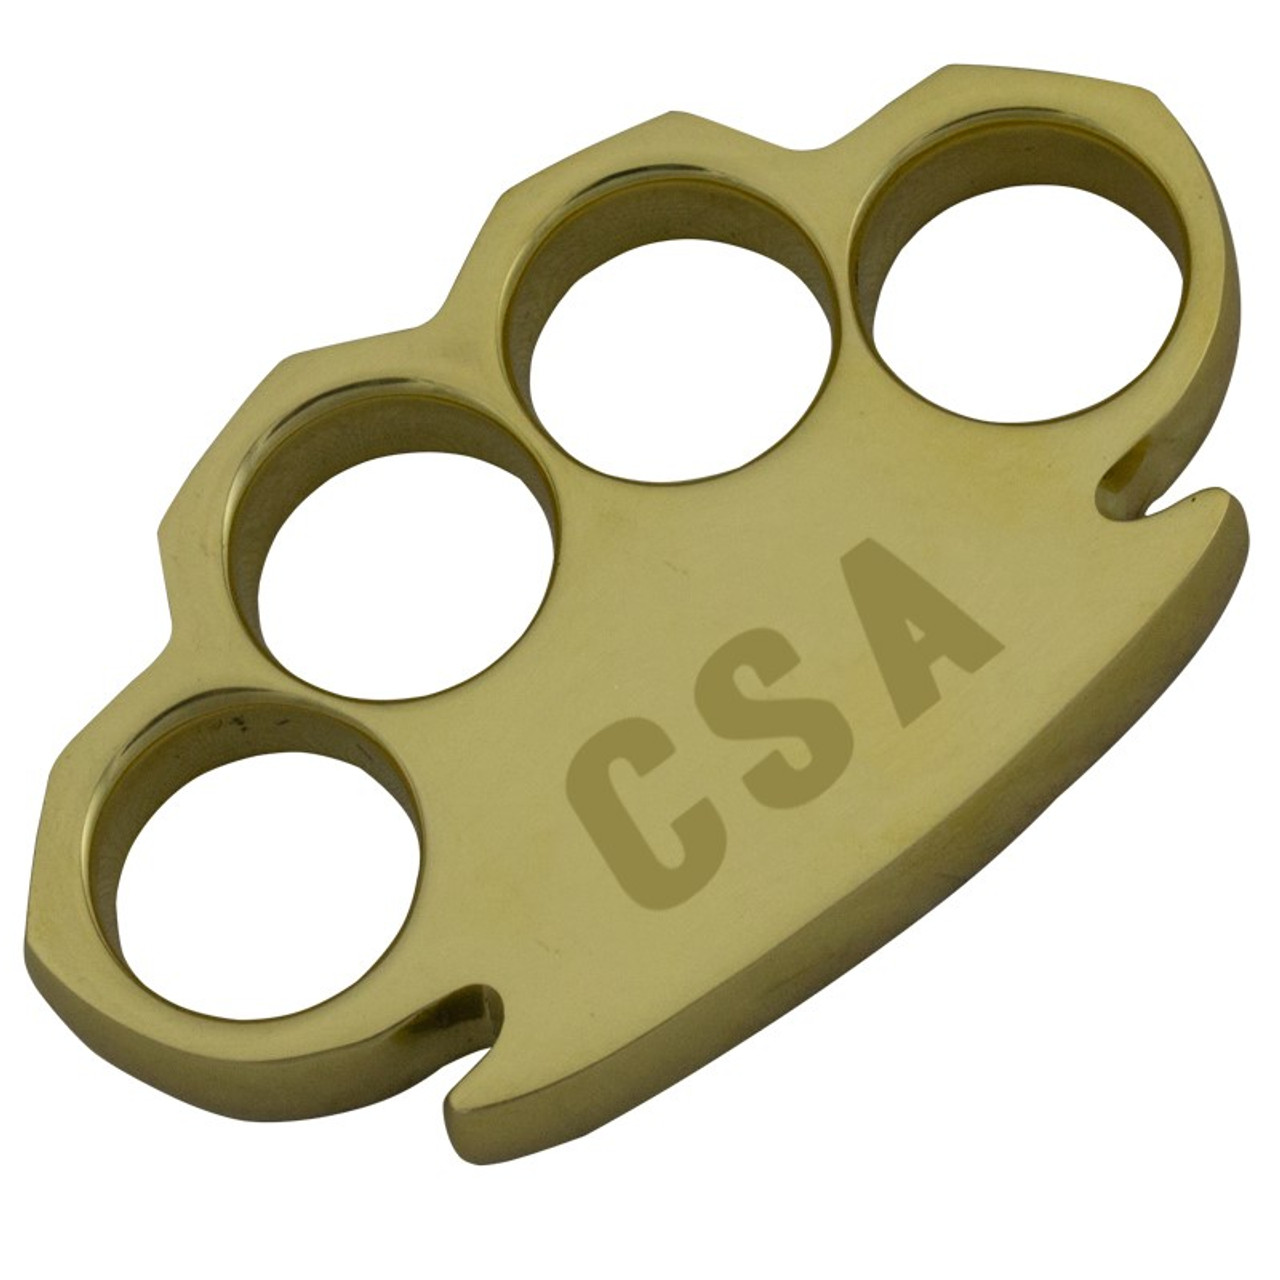 Dalton 15 OZ Real Brass Knuckles Buckle Paperweight - Heavy Duty CSA